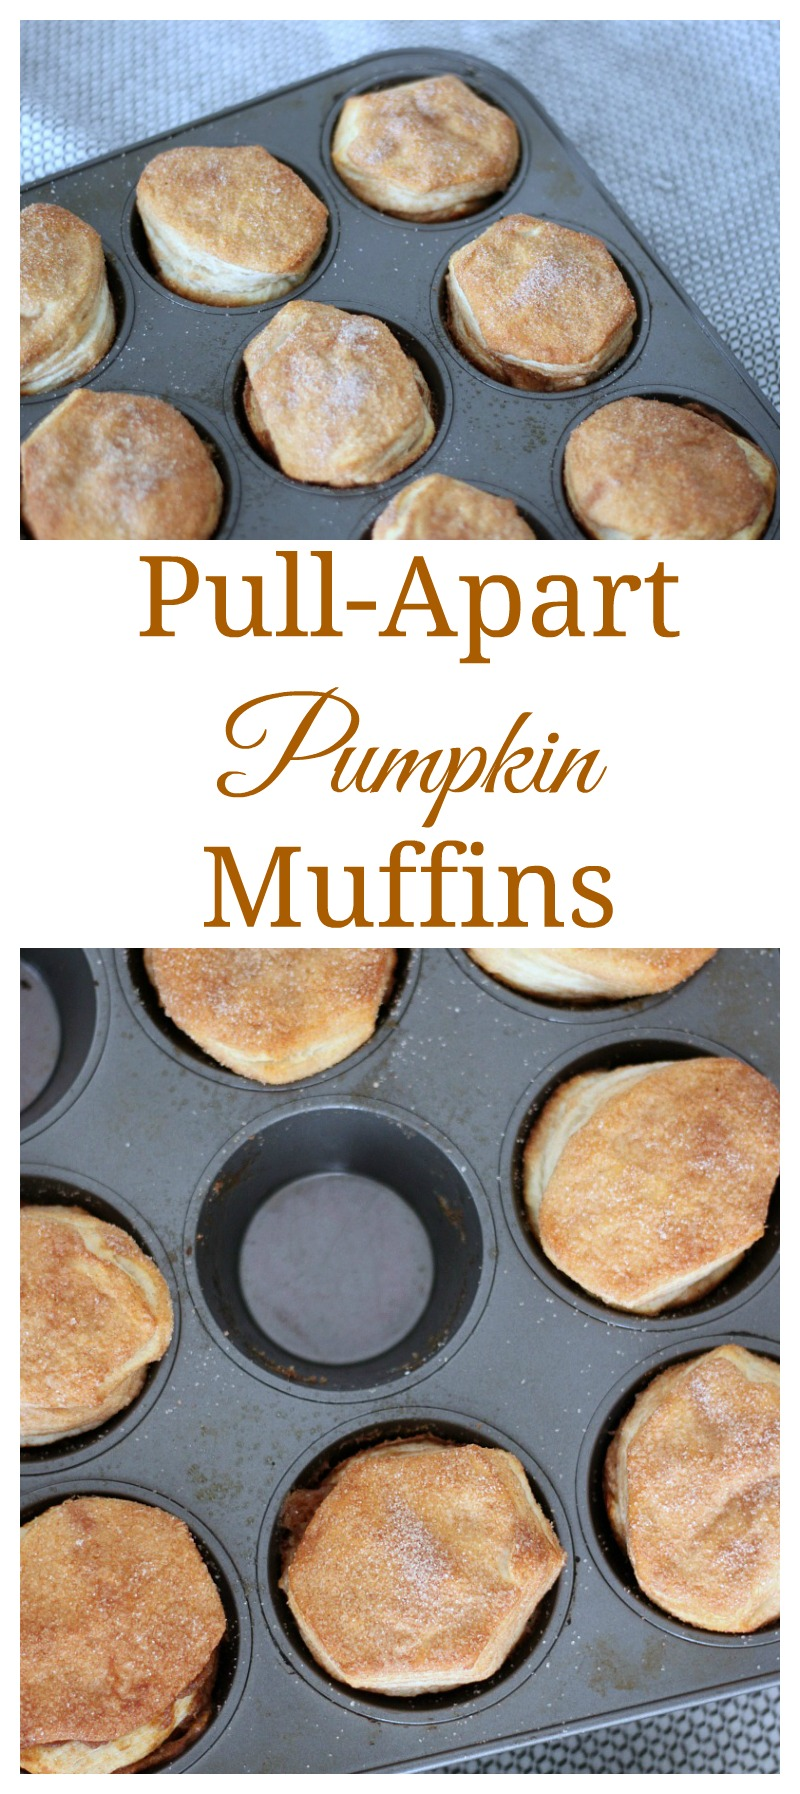 This pull-apart pumpkin muffin recipe is an easy to make holiday treat that requires few ingredients but tastes oh so good.#muffins #pumpkin